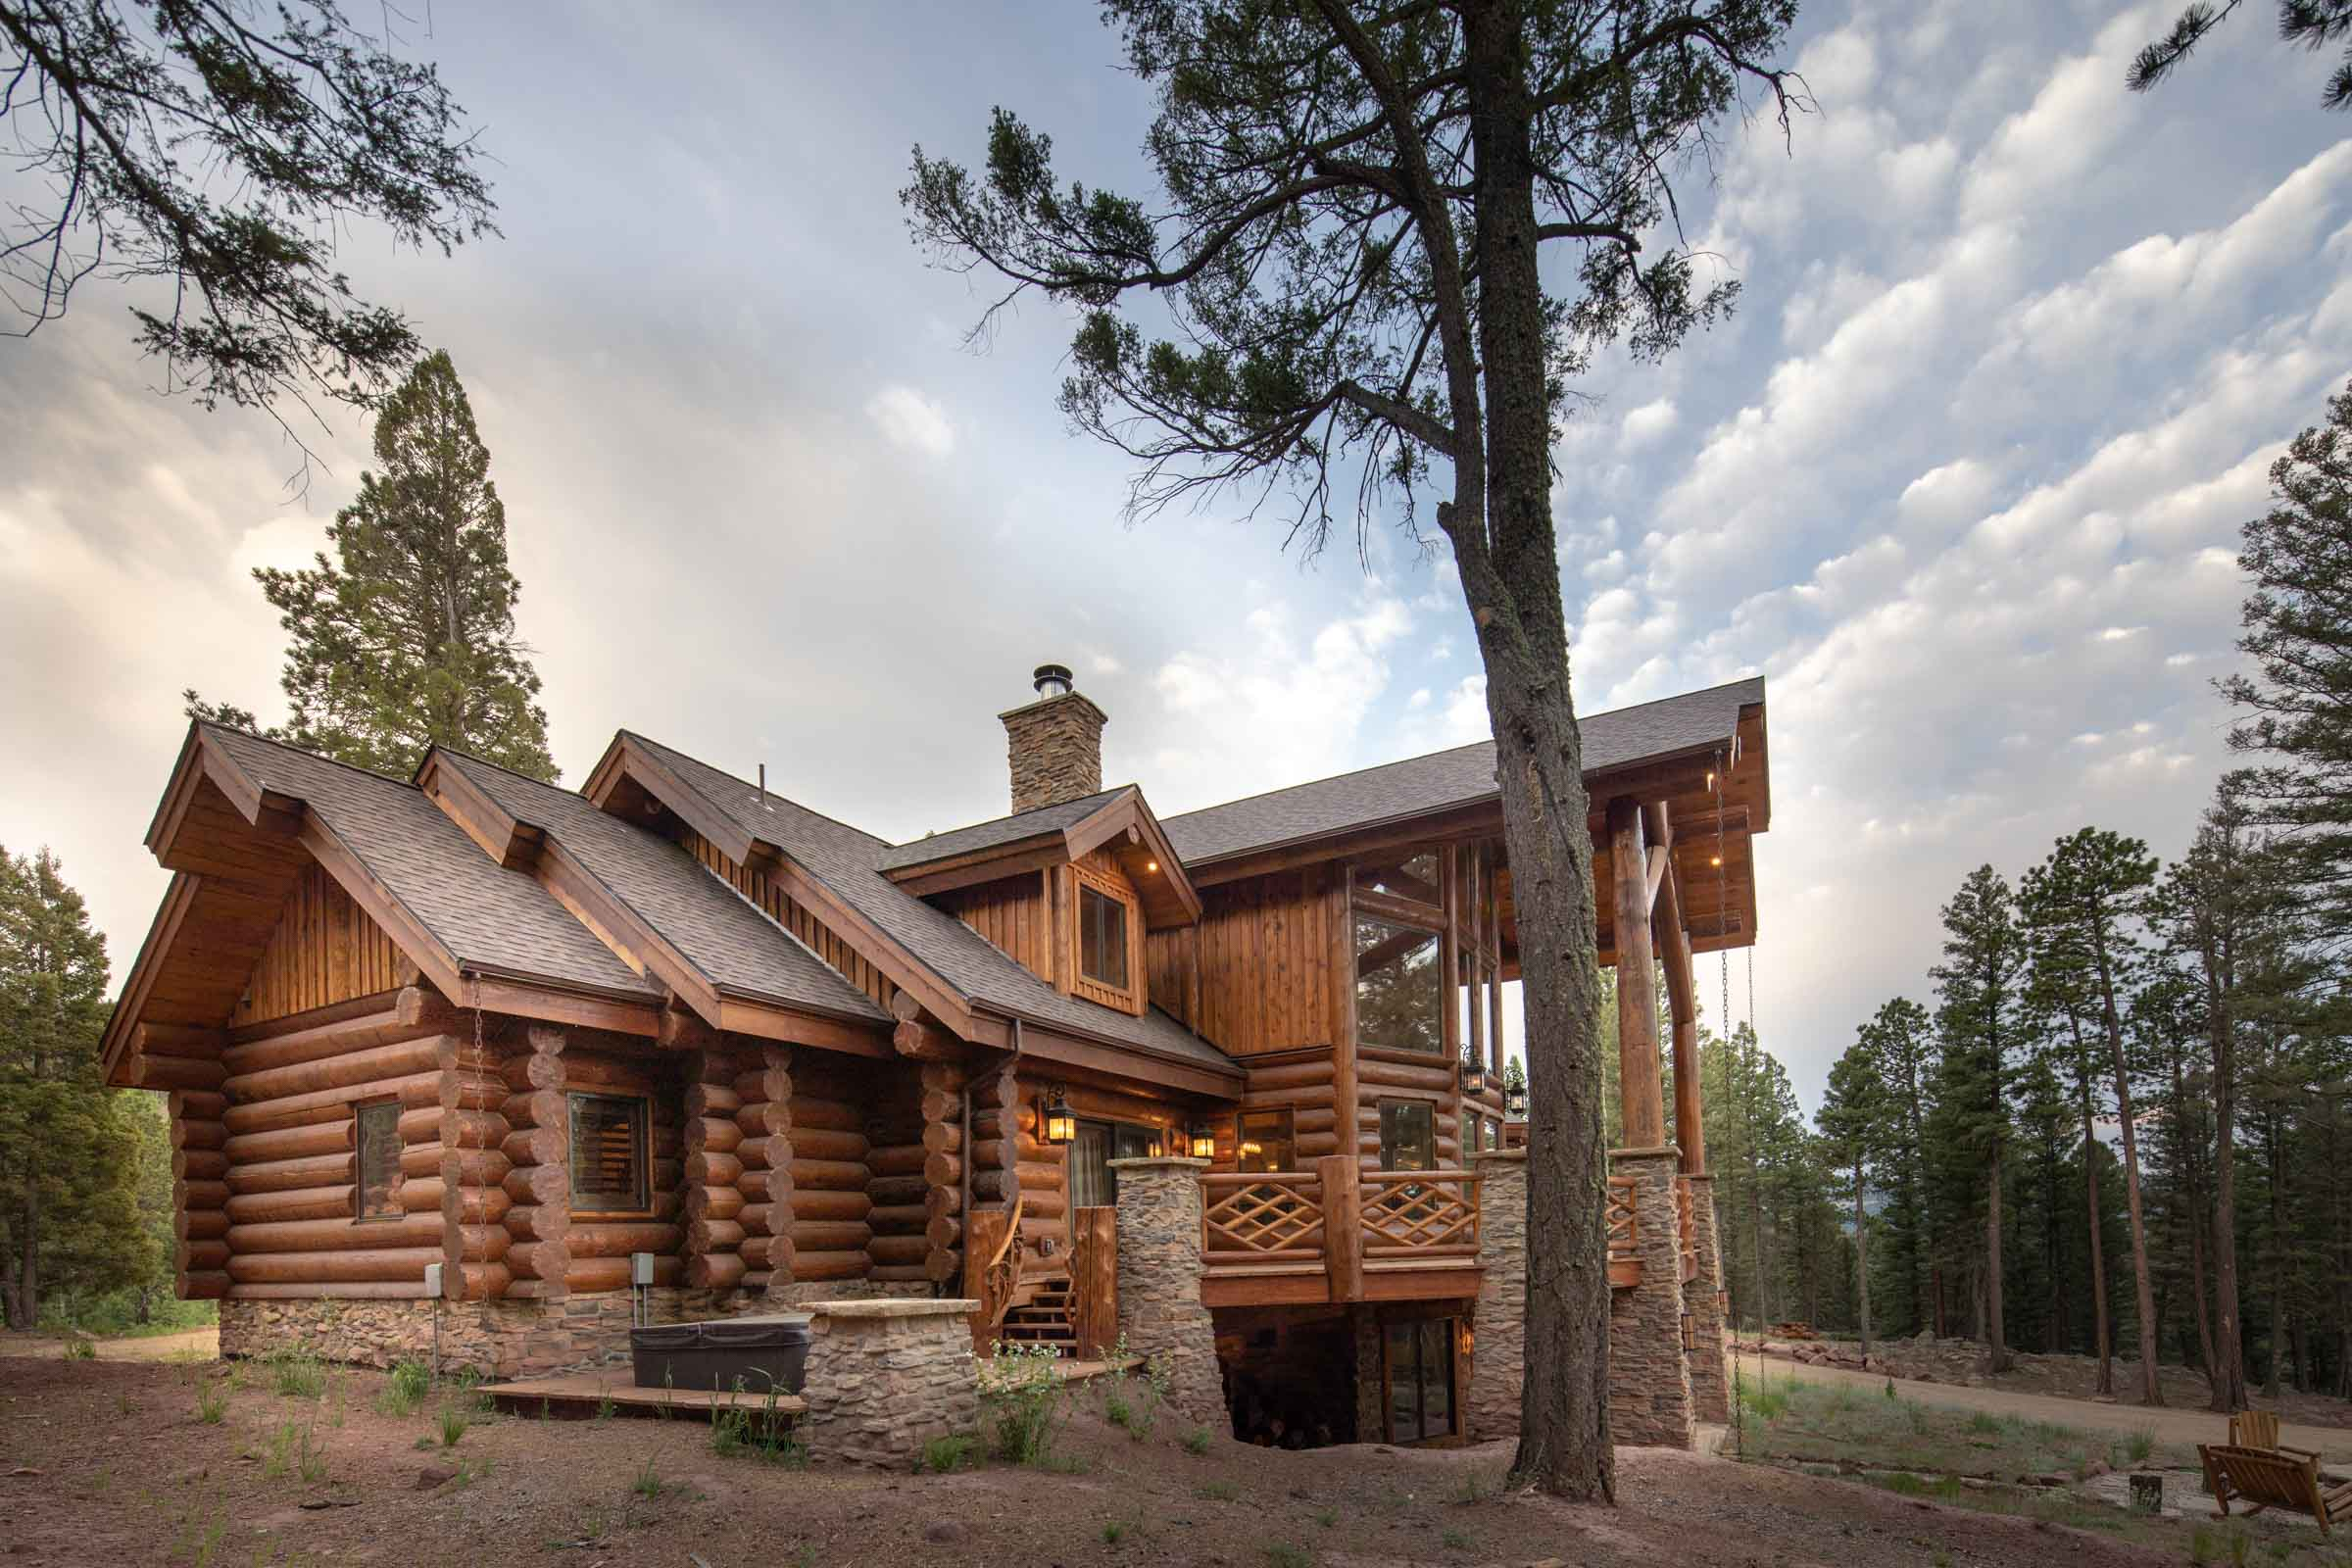 Luxury log cabin angel fire new mexico-11